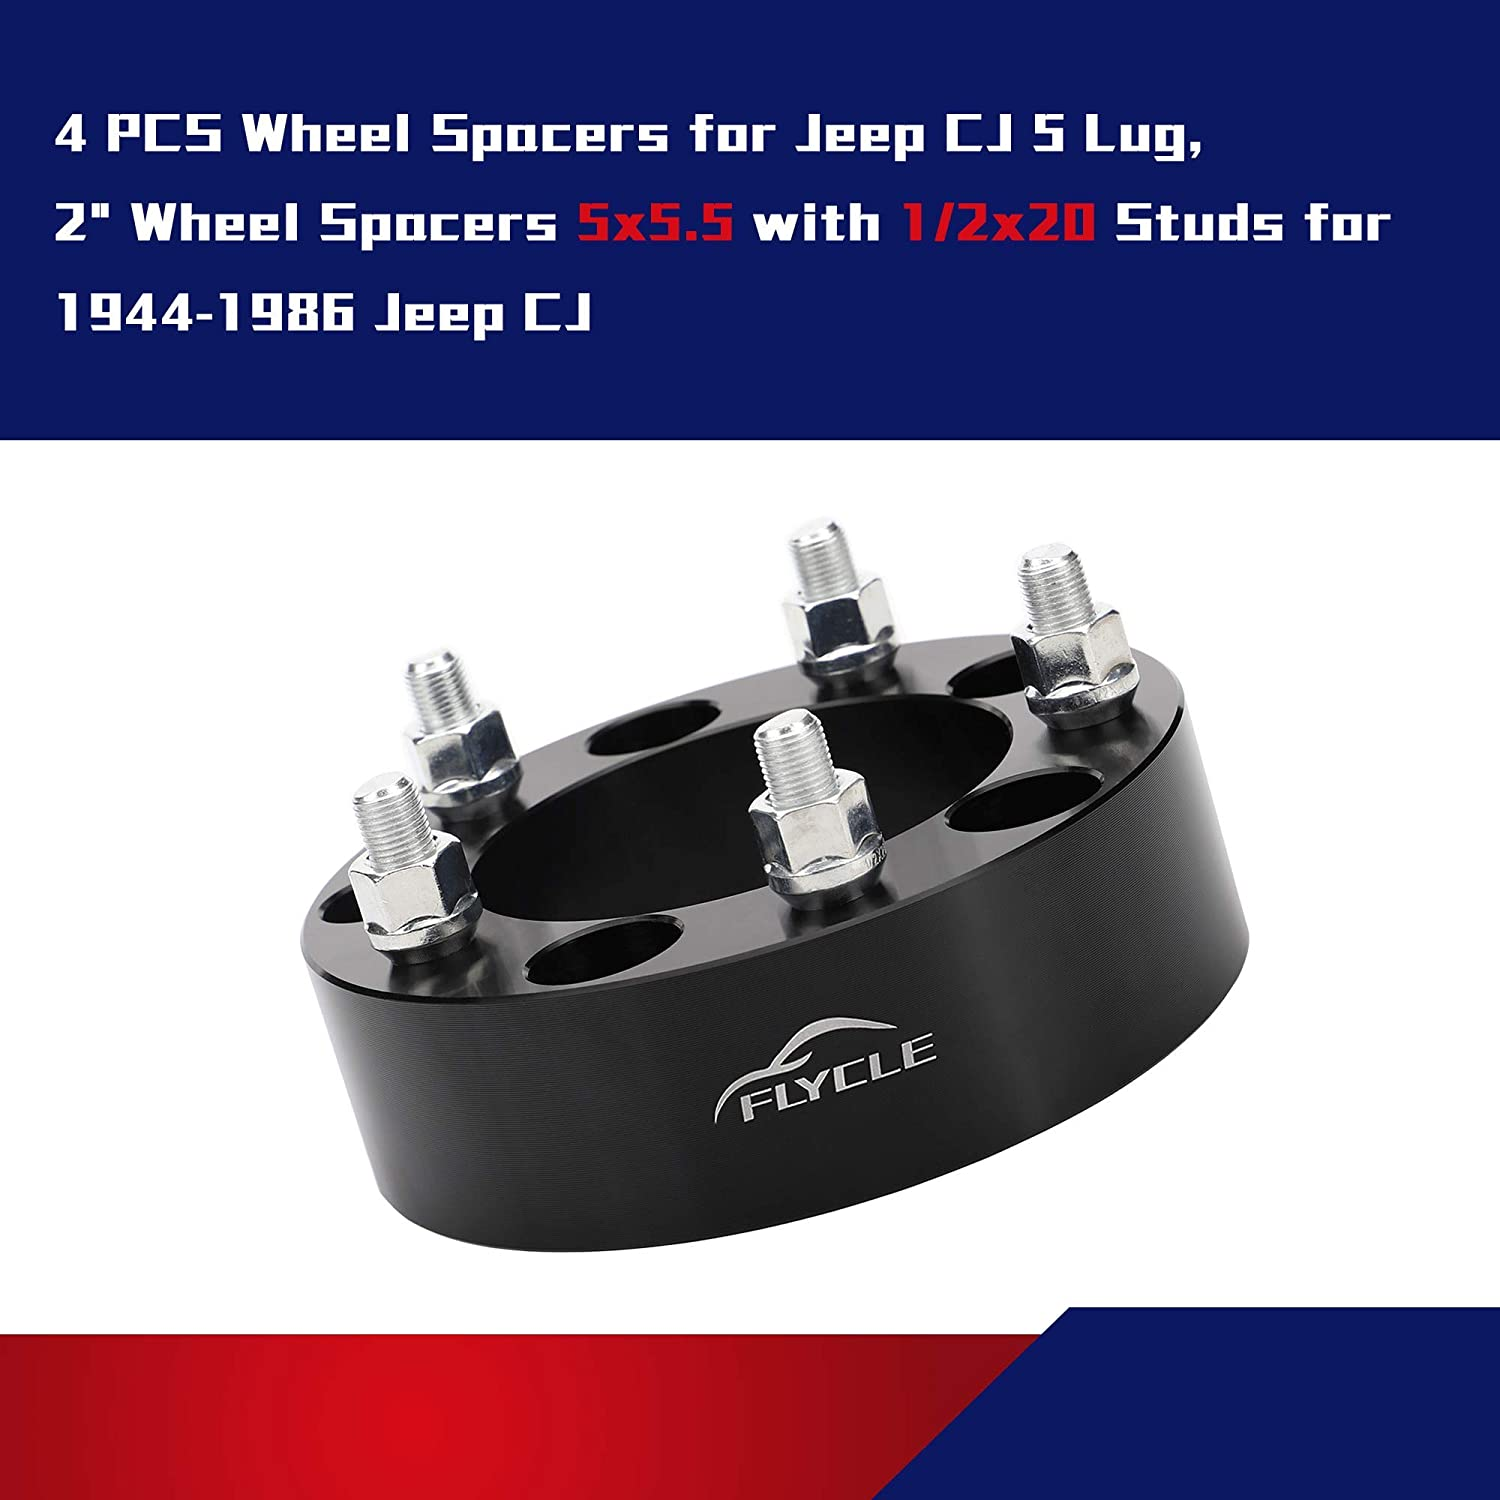 4pcs 2 inch Wheel Spacers 5x5.5 to 5x5.5 for 1994-2001 Dodge Ram 1500,1992-2006 Ford E150 1944-1986 Jeep CJ with 1//2-20 Studs